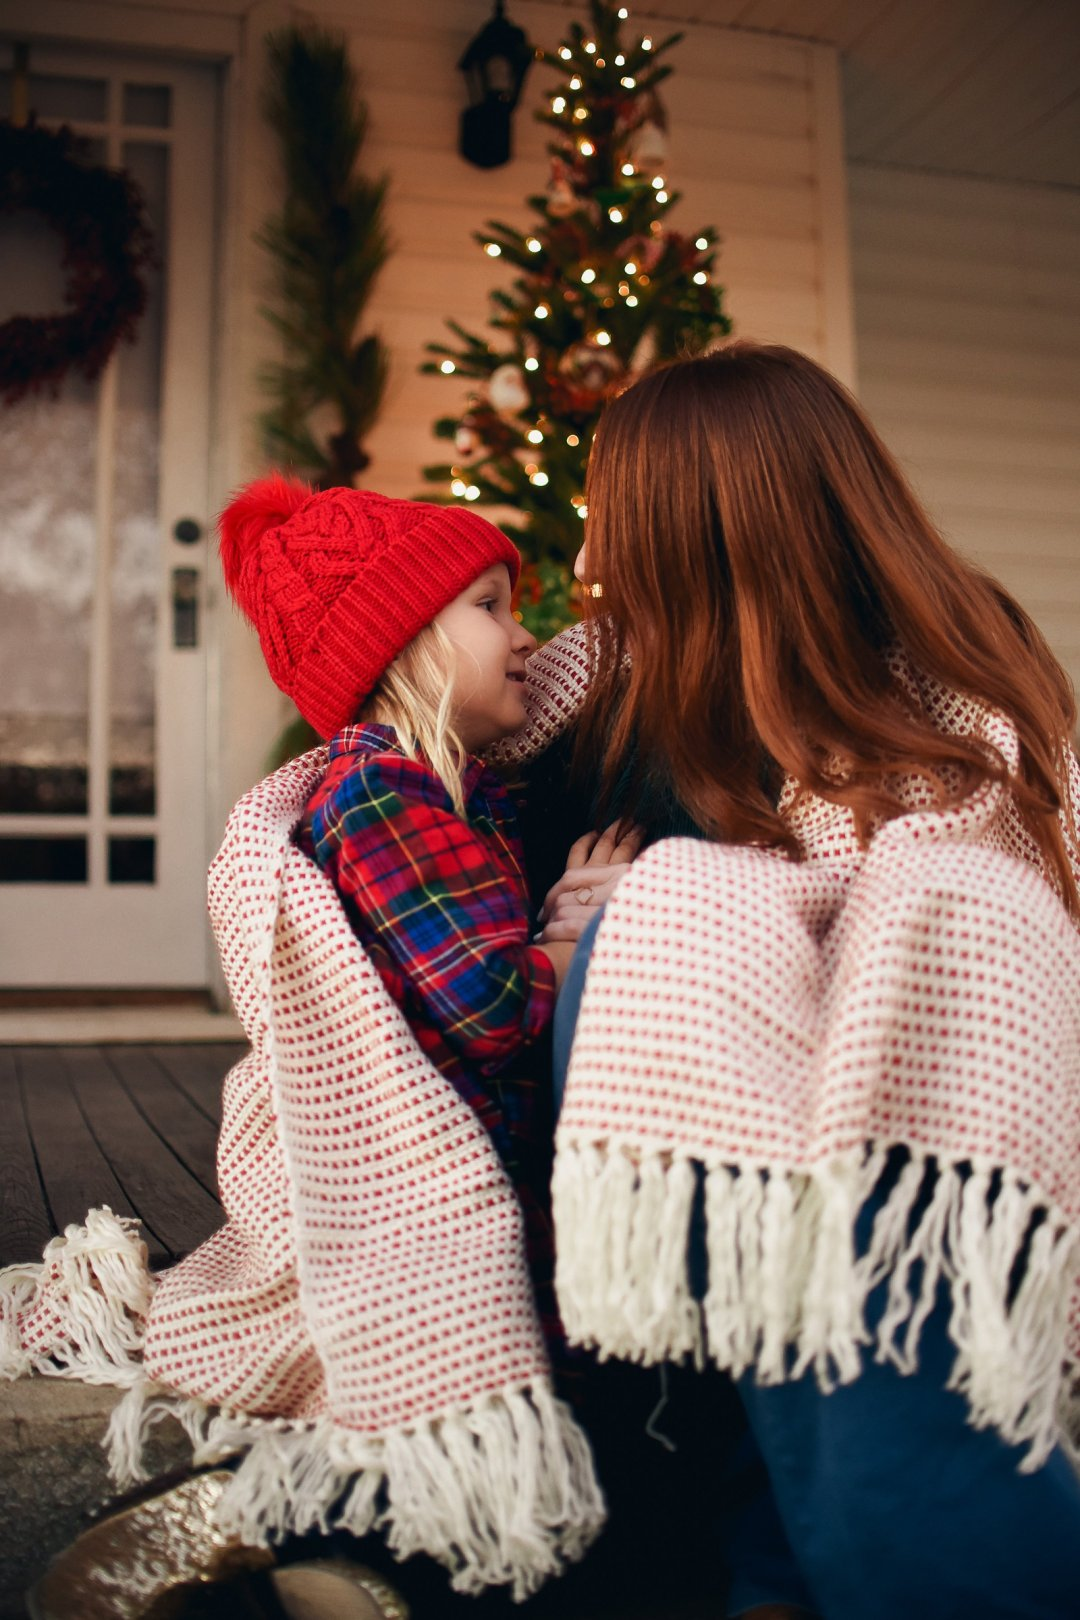 Mother and daughter cuddling and talking under festive red and white throw blanket in front of Christmas tree on front porch